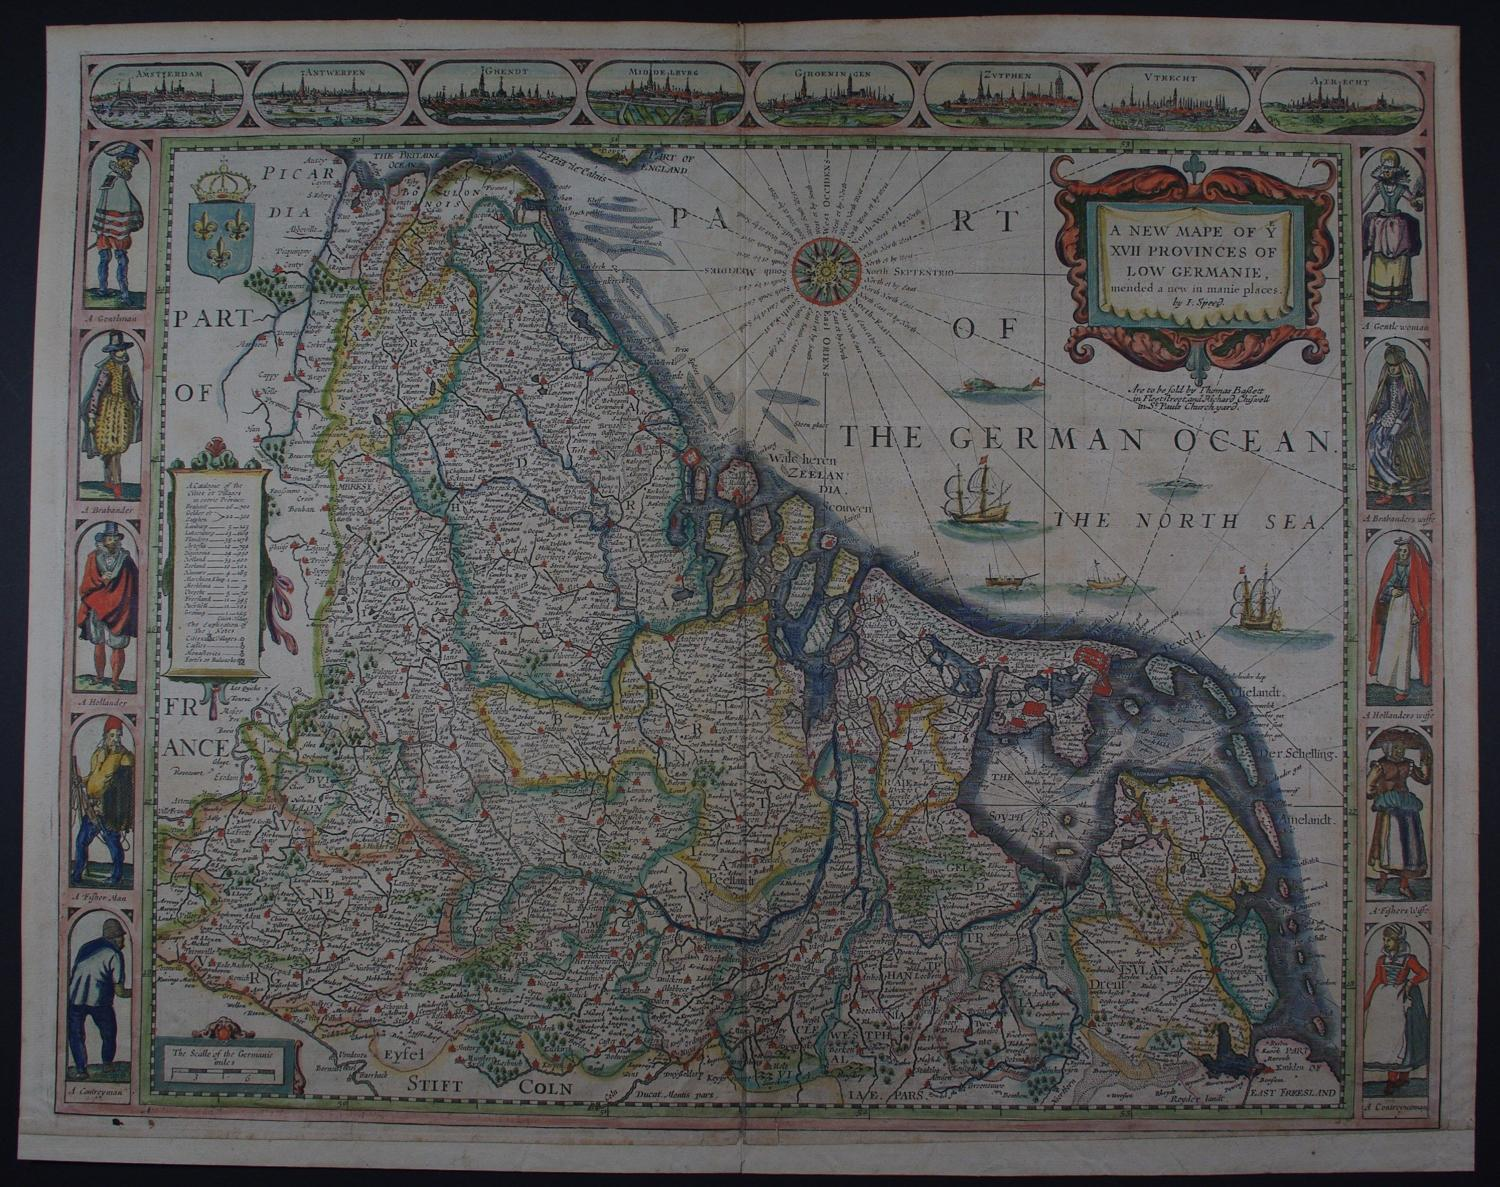 A New Mape of Ye XV11 Provinces of Low Germanie mended a by John Speed